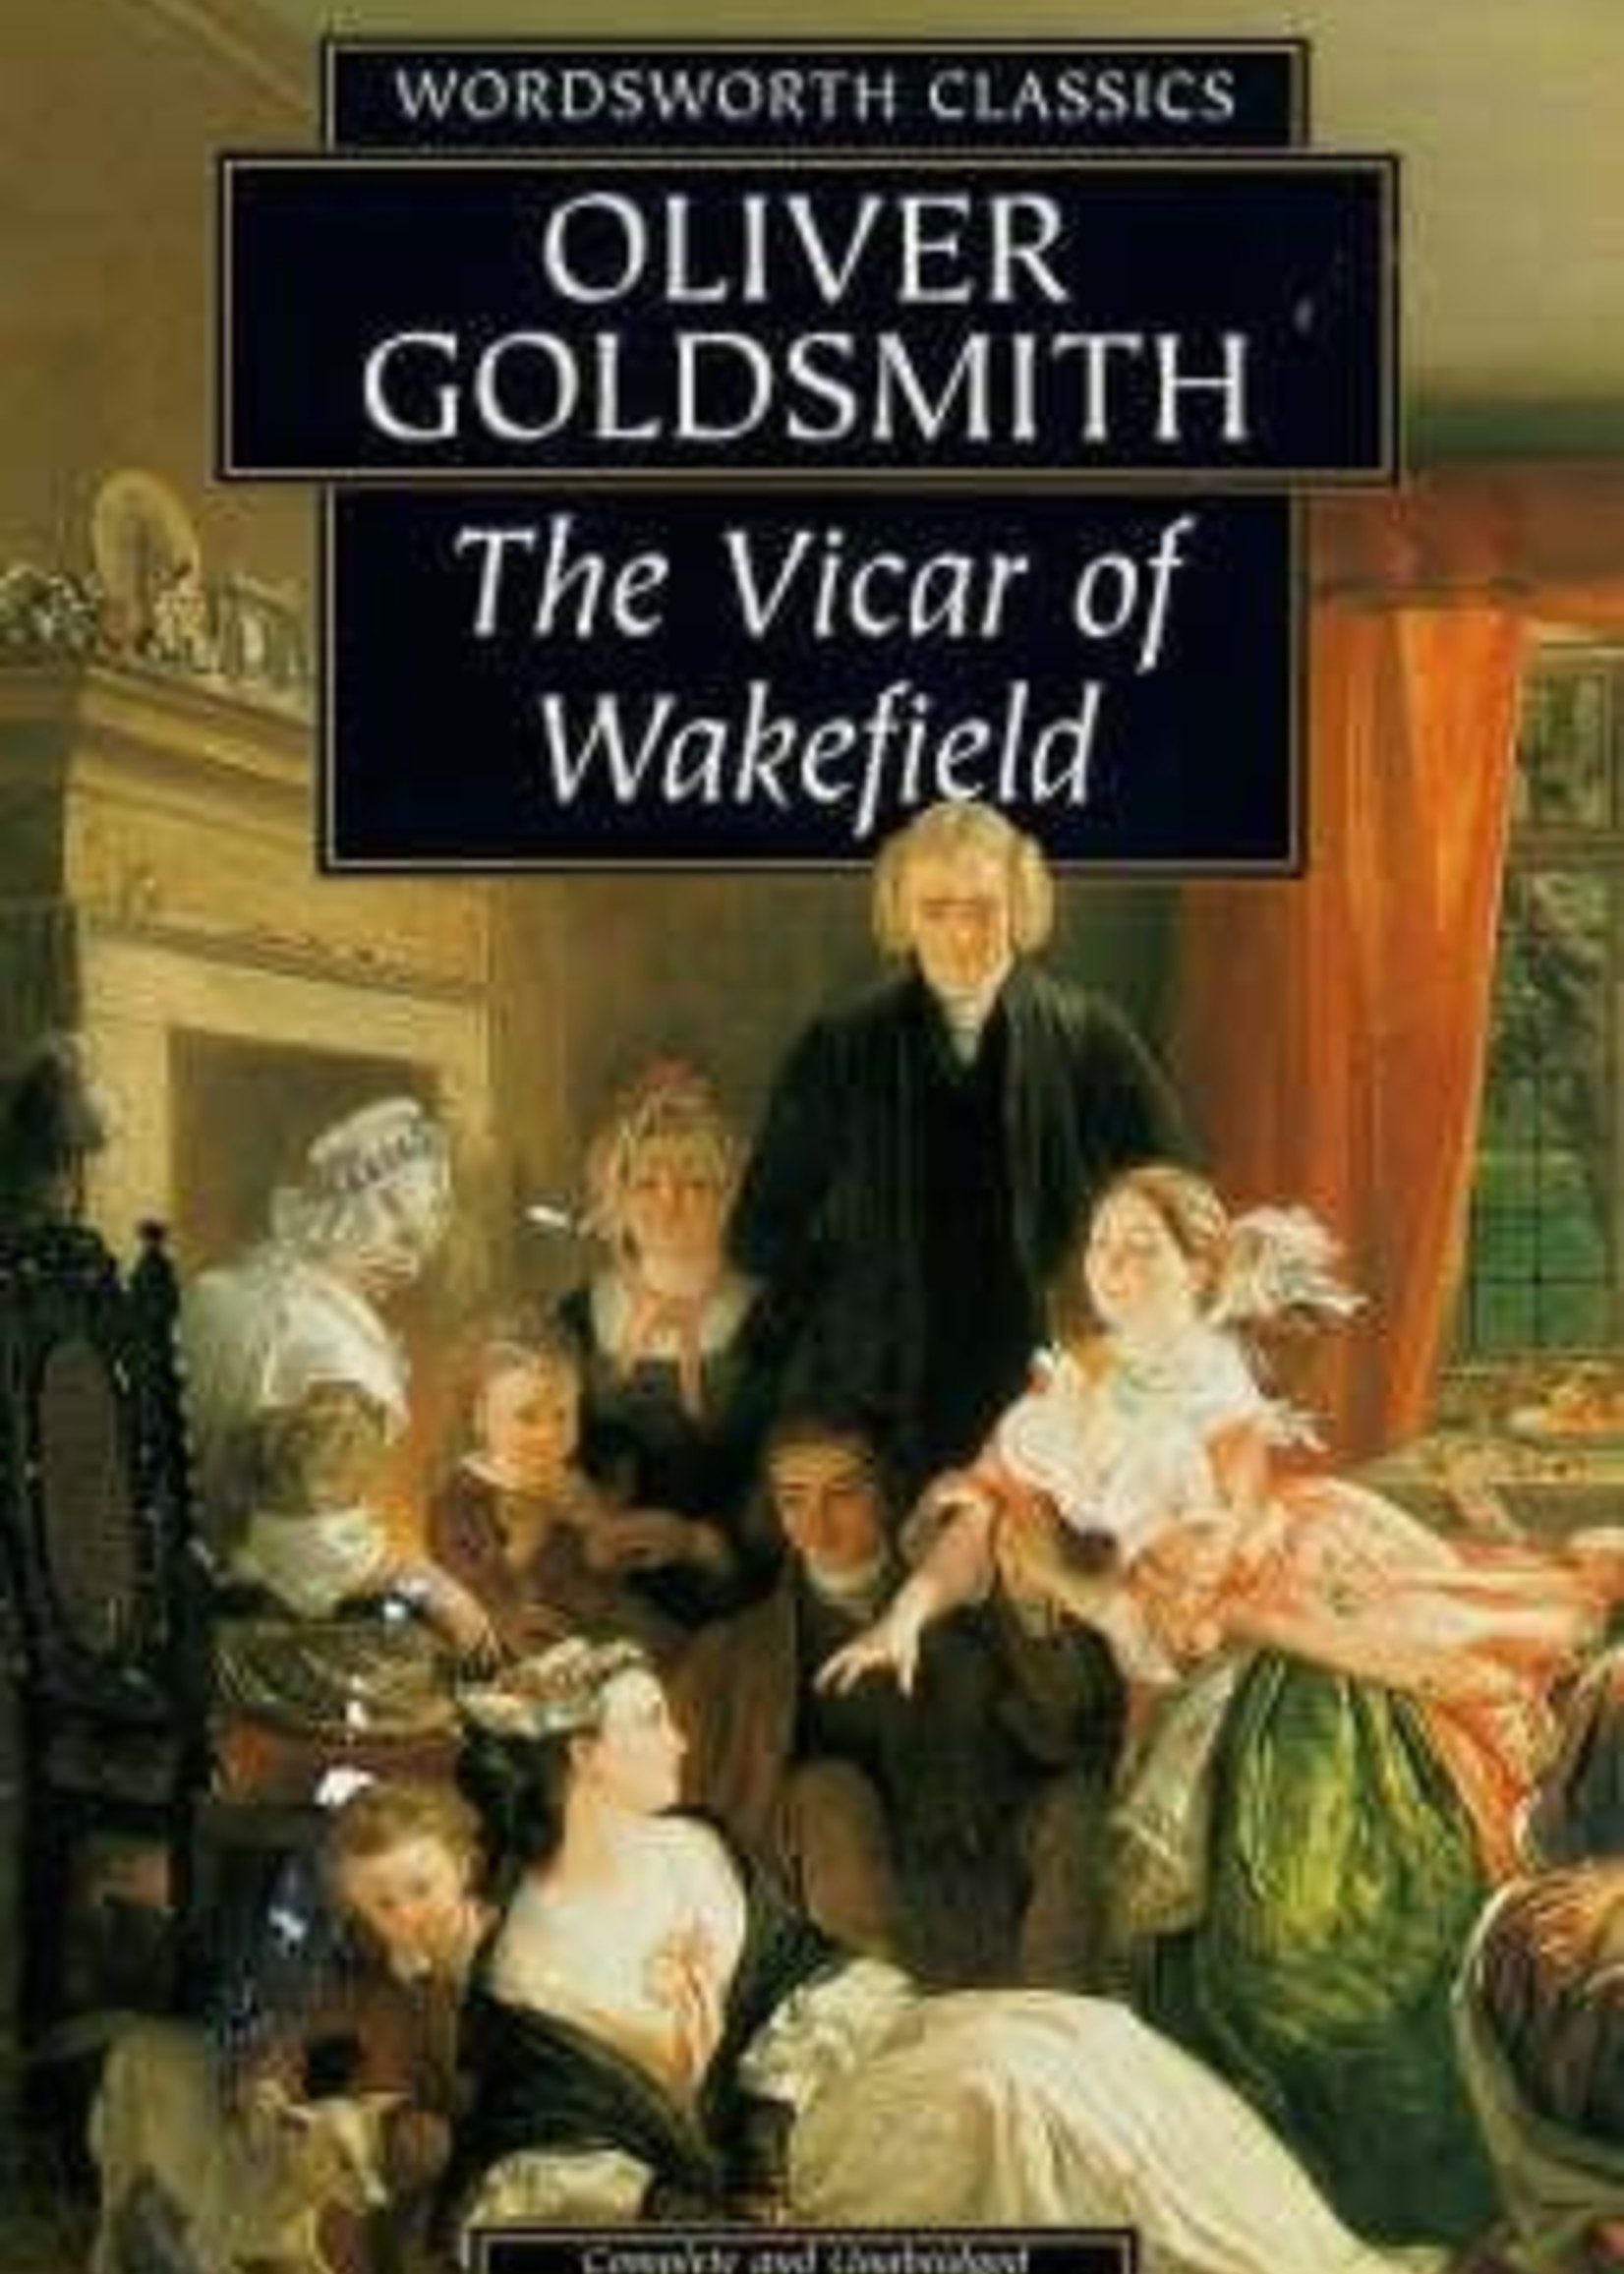 USED - The Vicar of Wakefield by Oliver Goldsmith